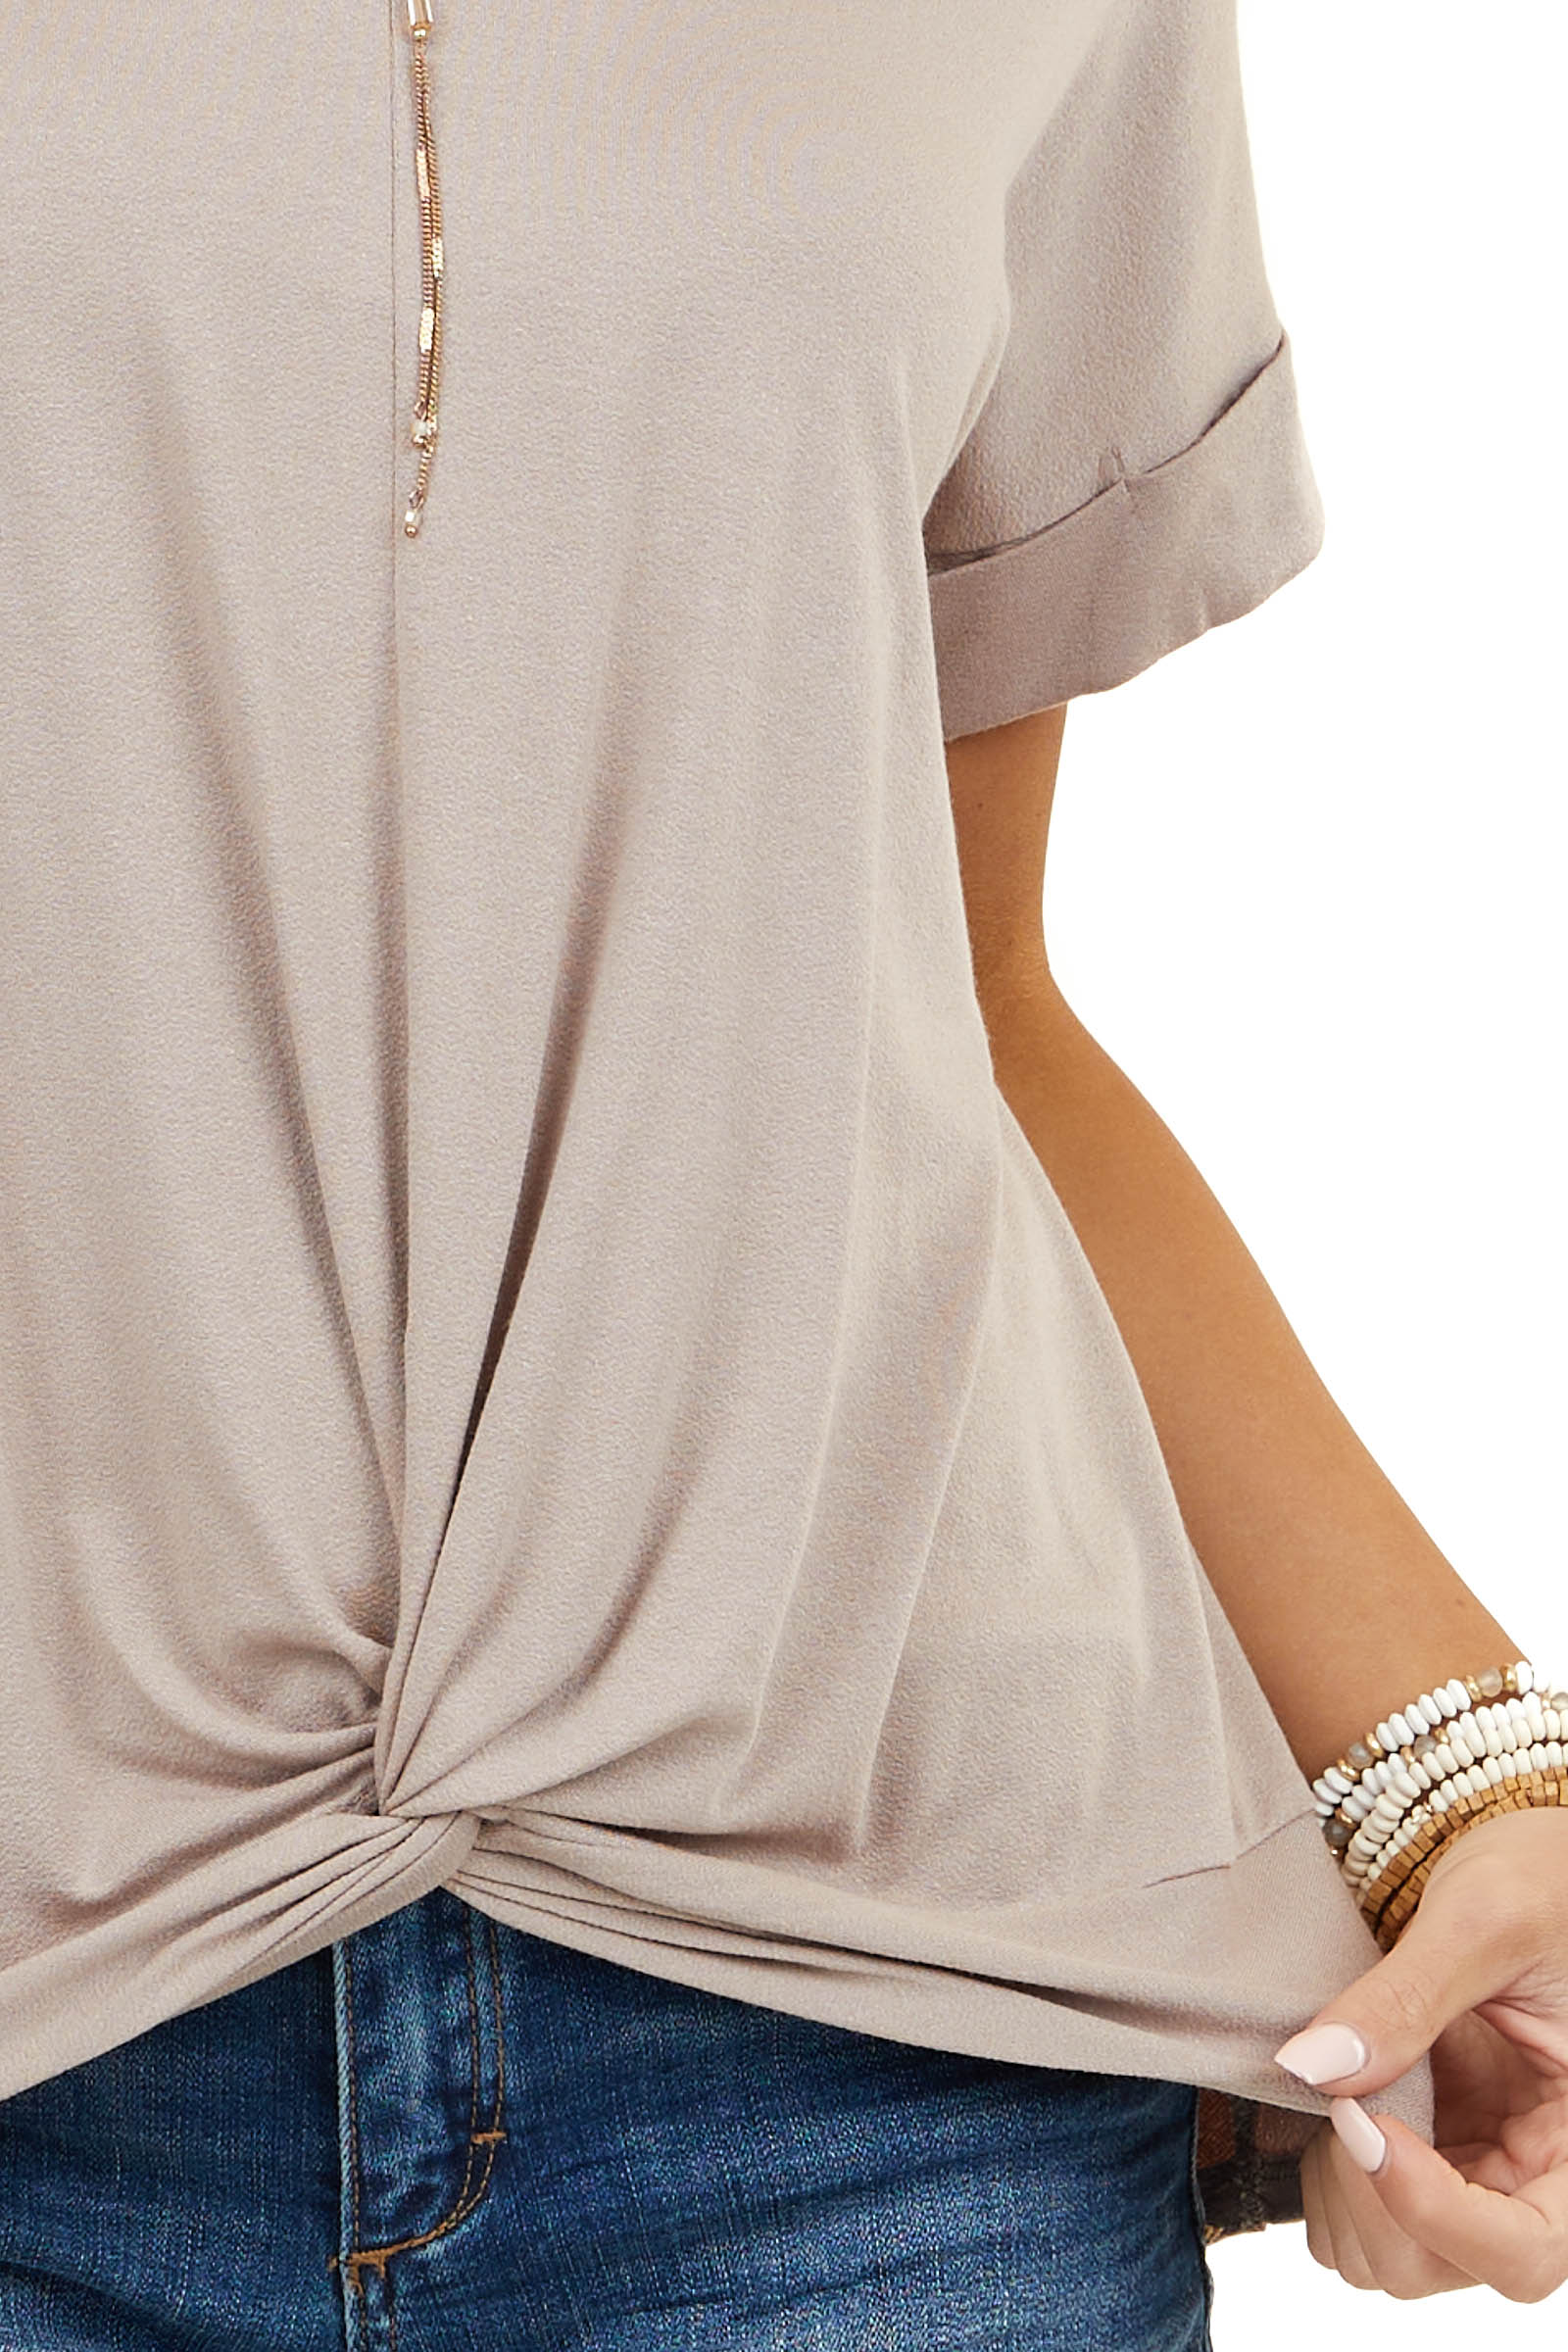 Latte Knit Top with Twist Detail and Short Cuffed Sleeves